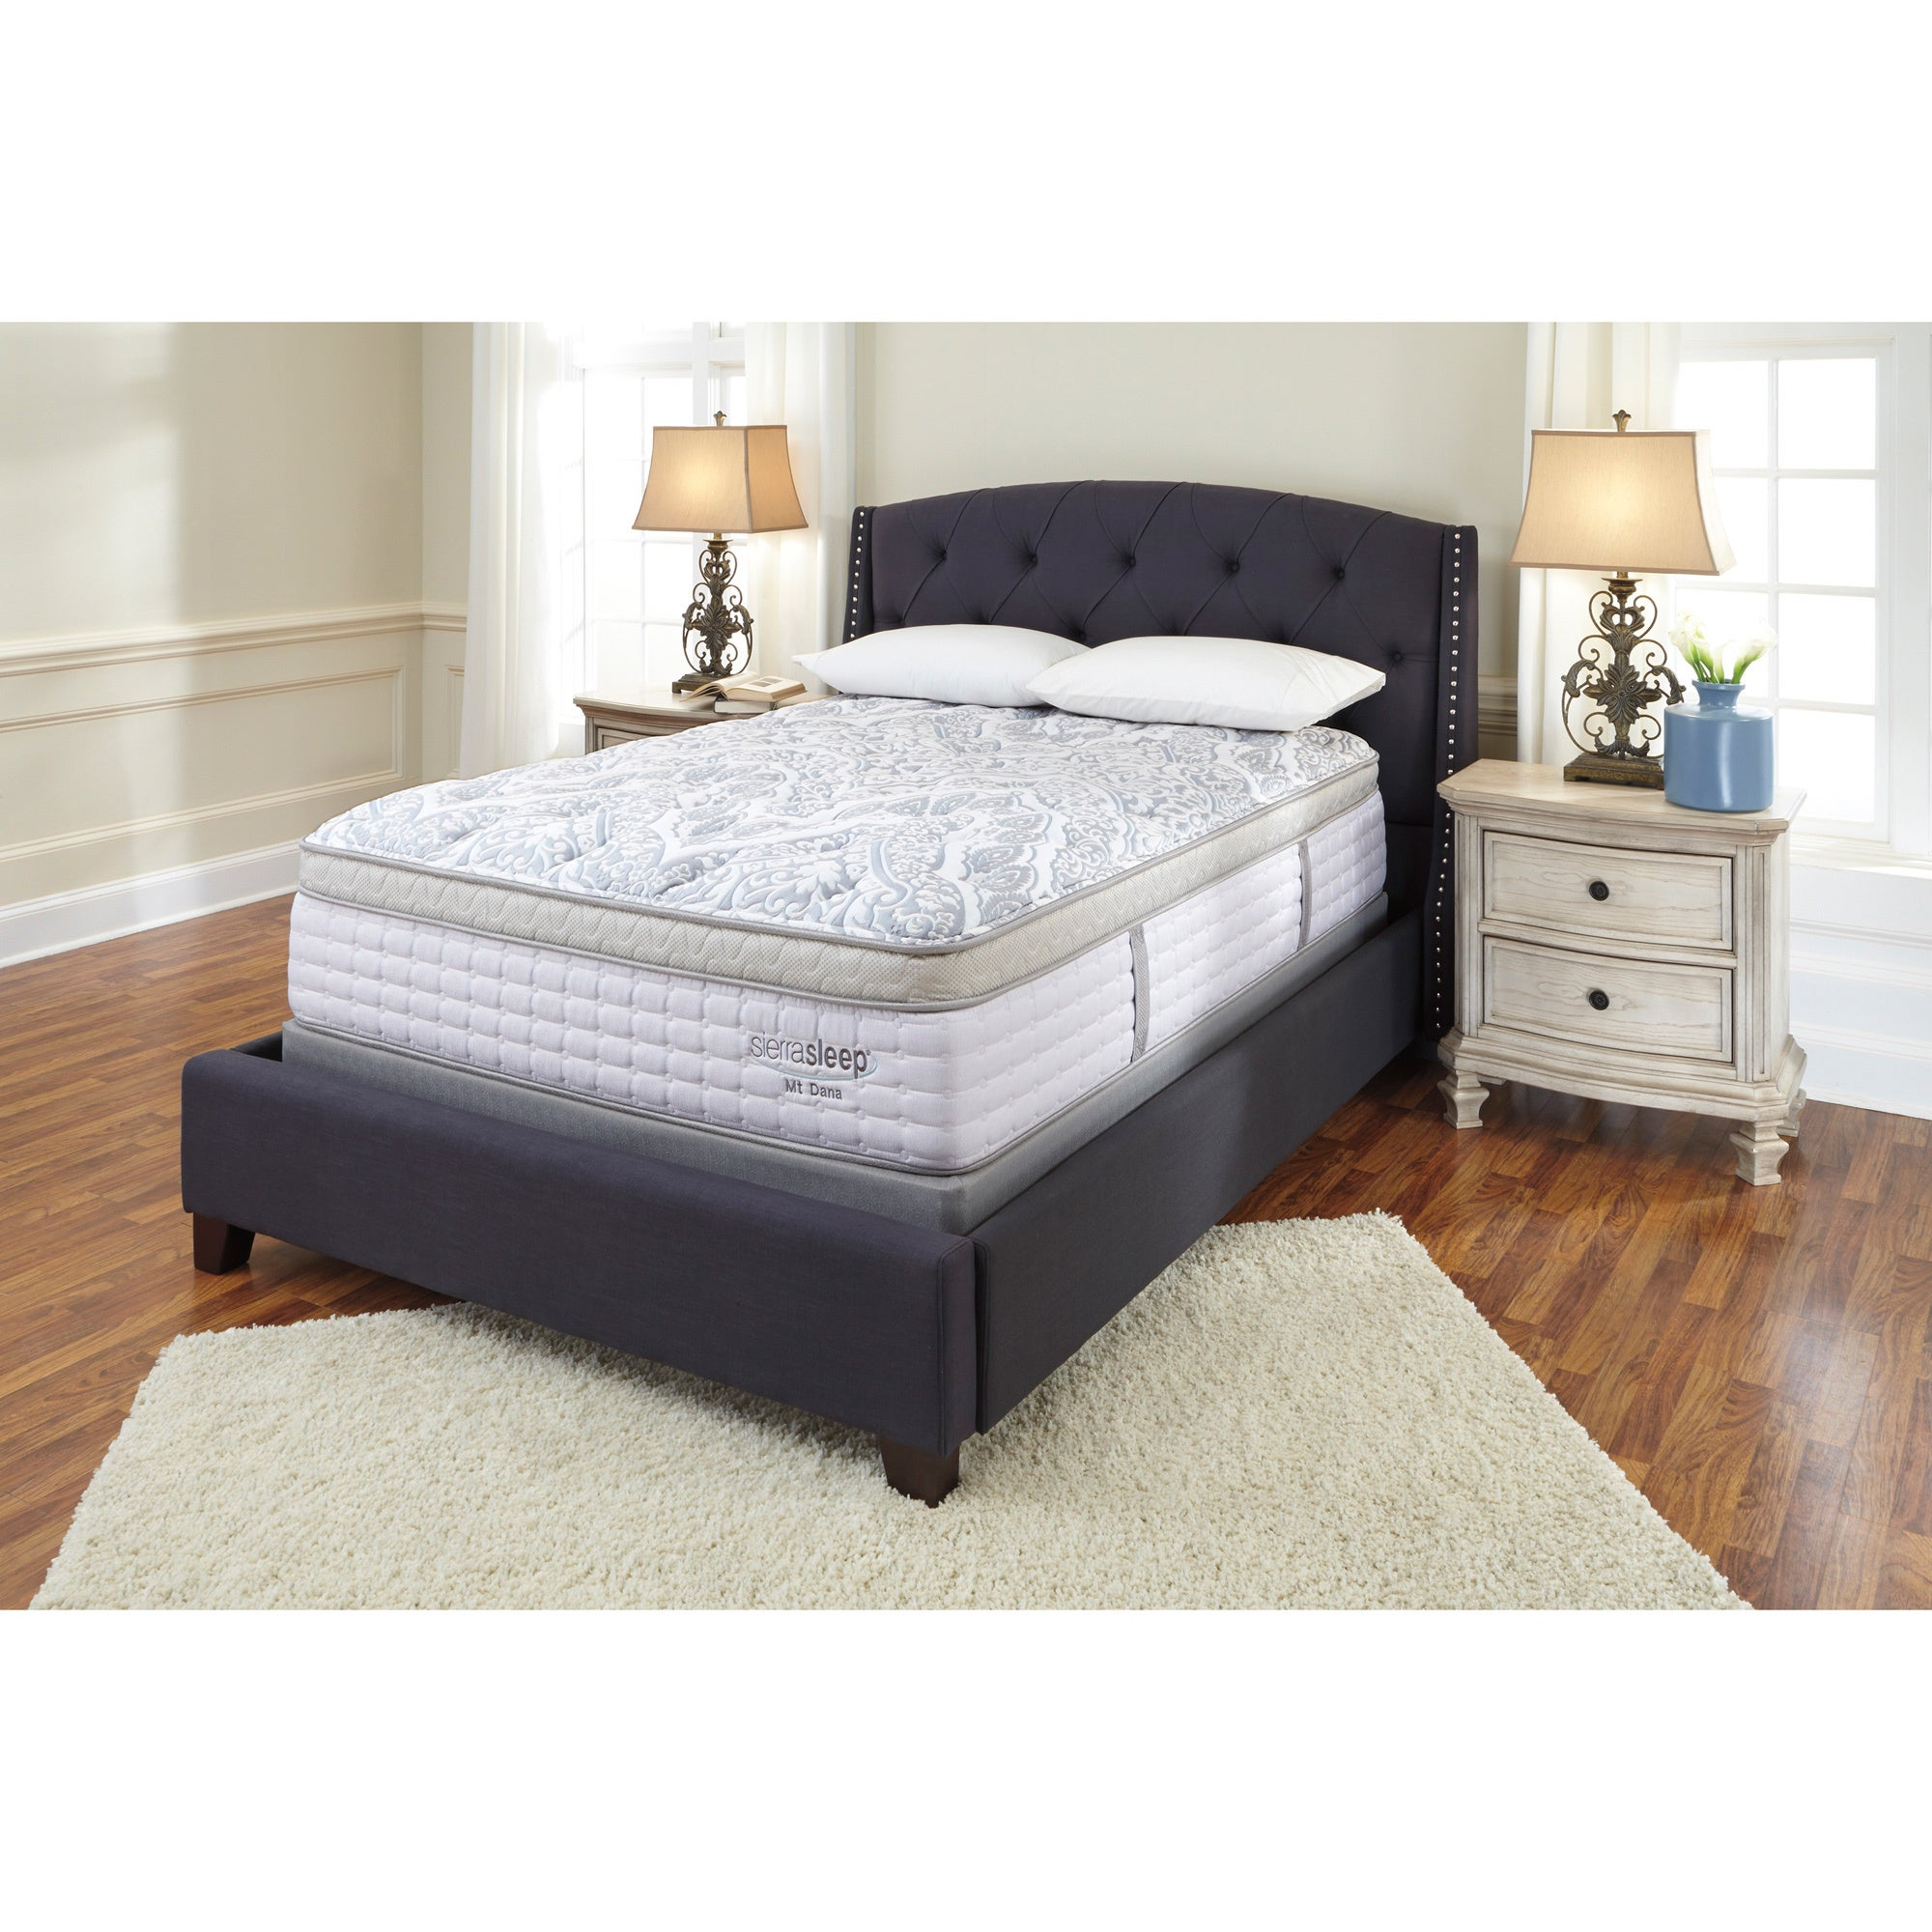 Top Product Reviews For Sierra Sleep By Ashley Mt Dana Euro Top King